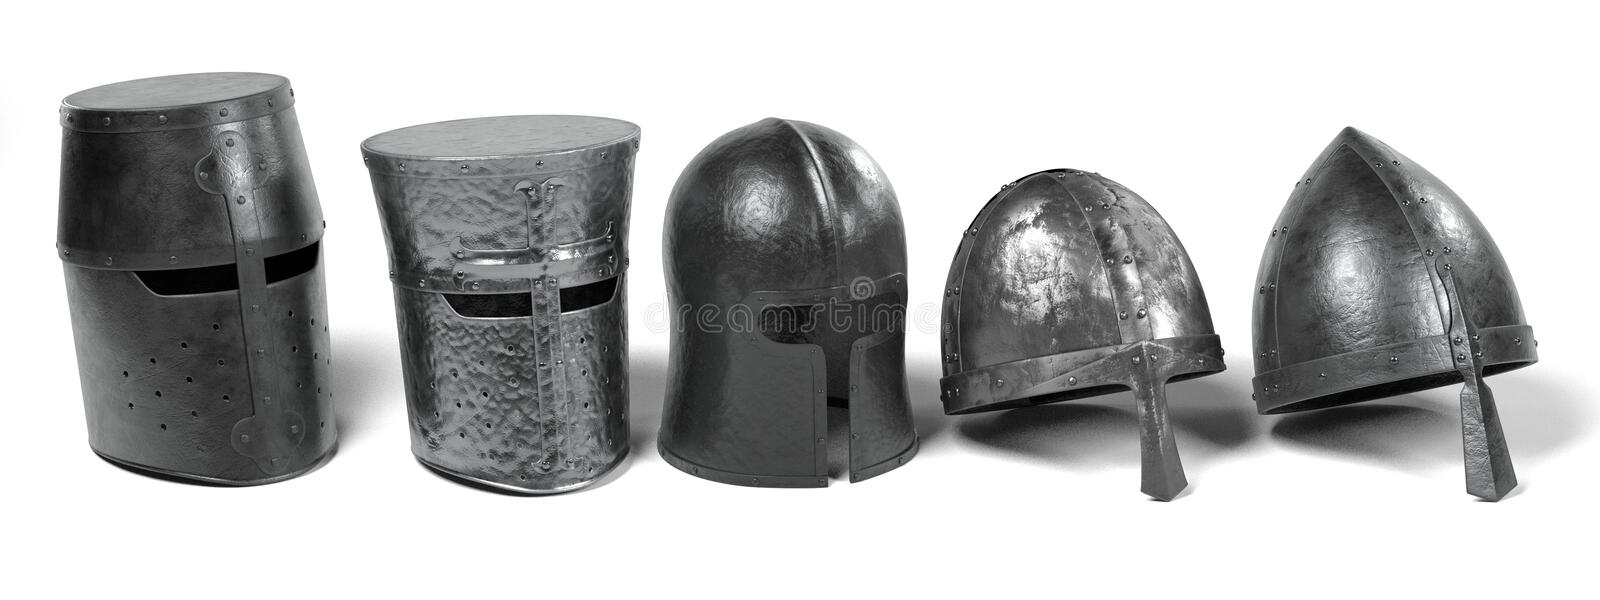 Medieval helmets vector illustration